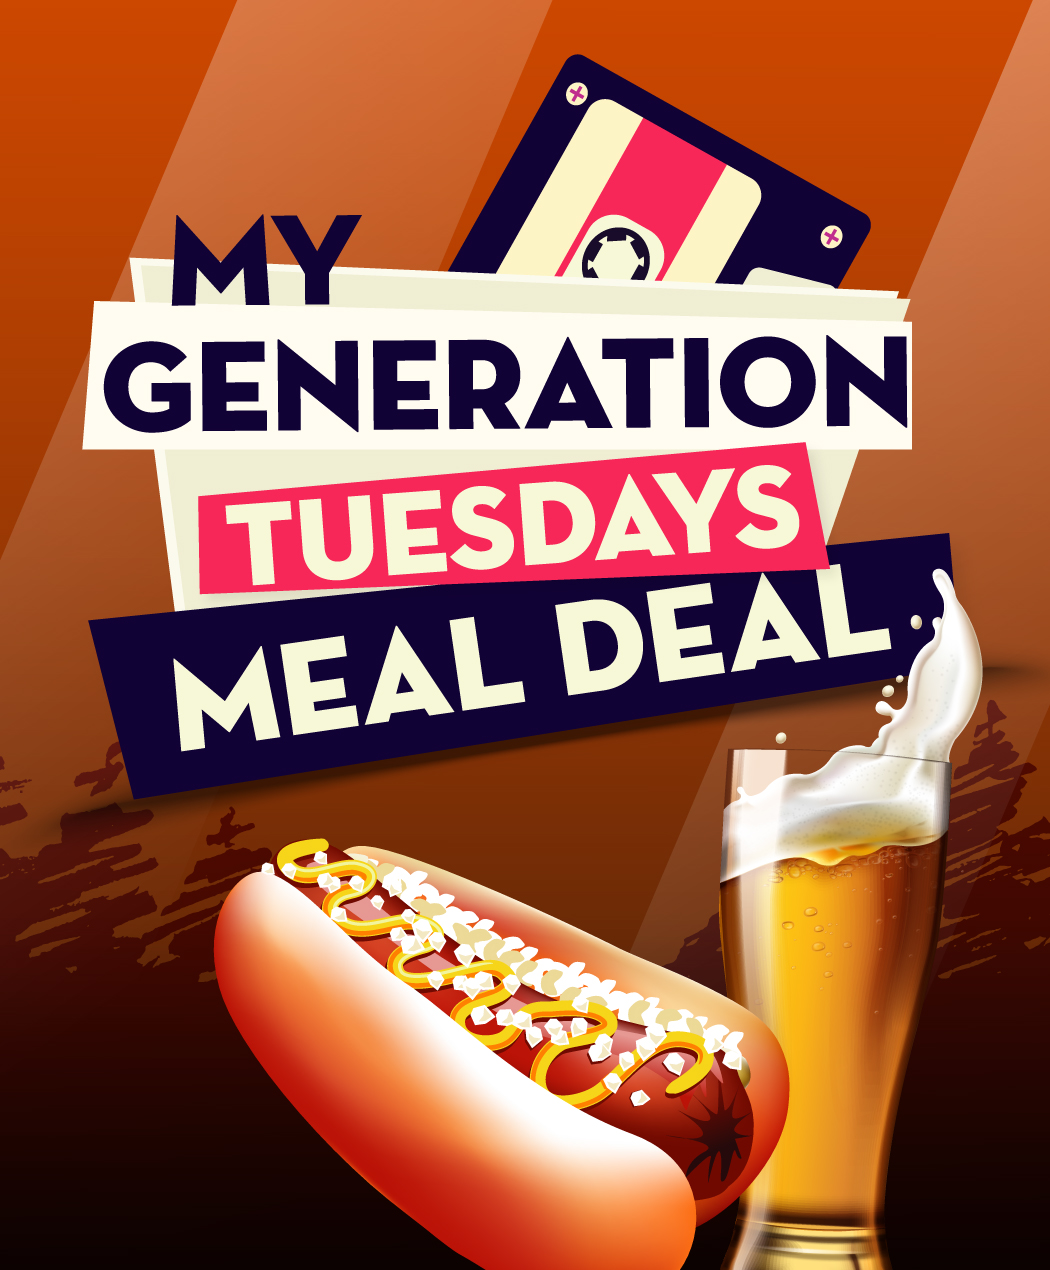 My Generation Tuesday Meal Deal